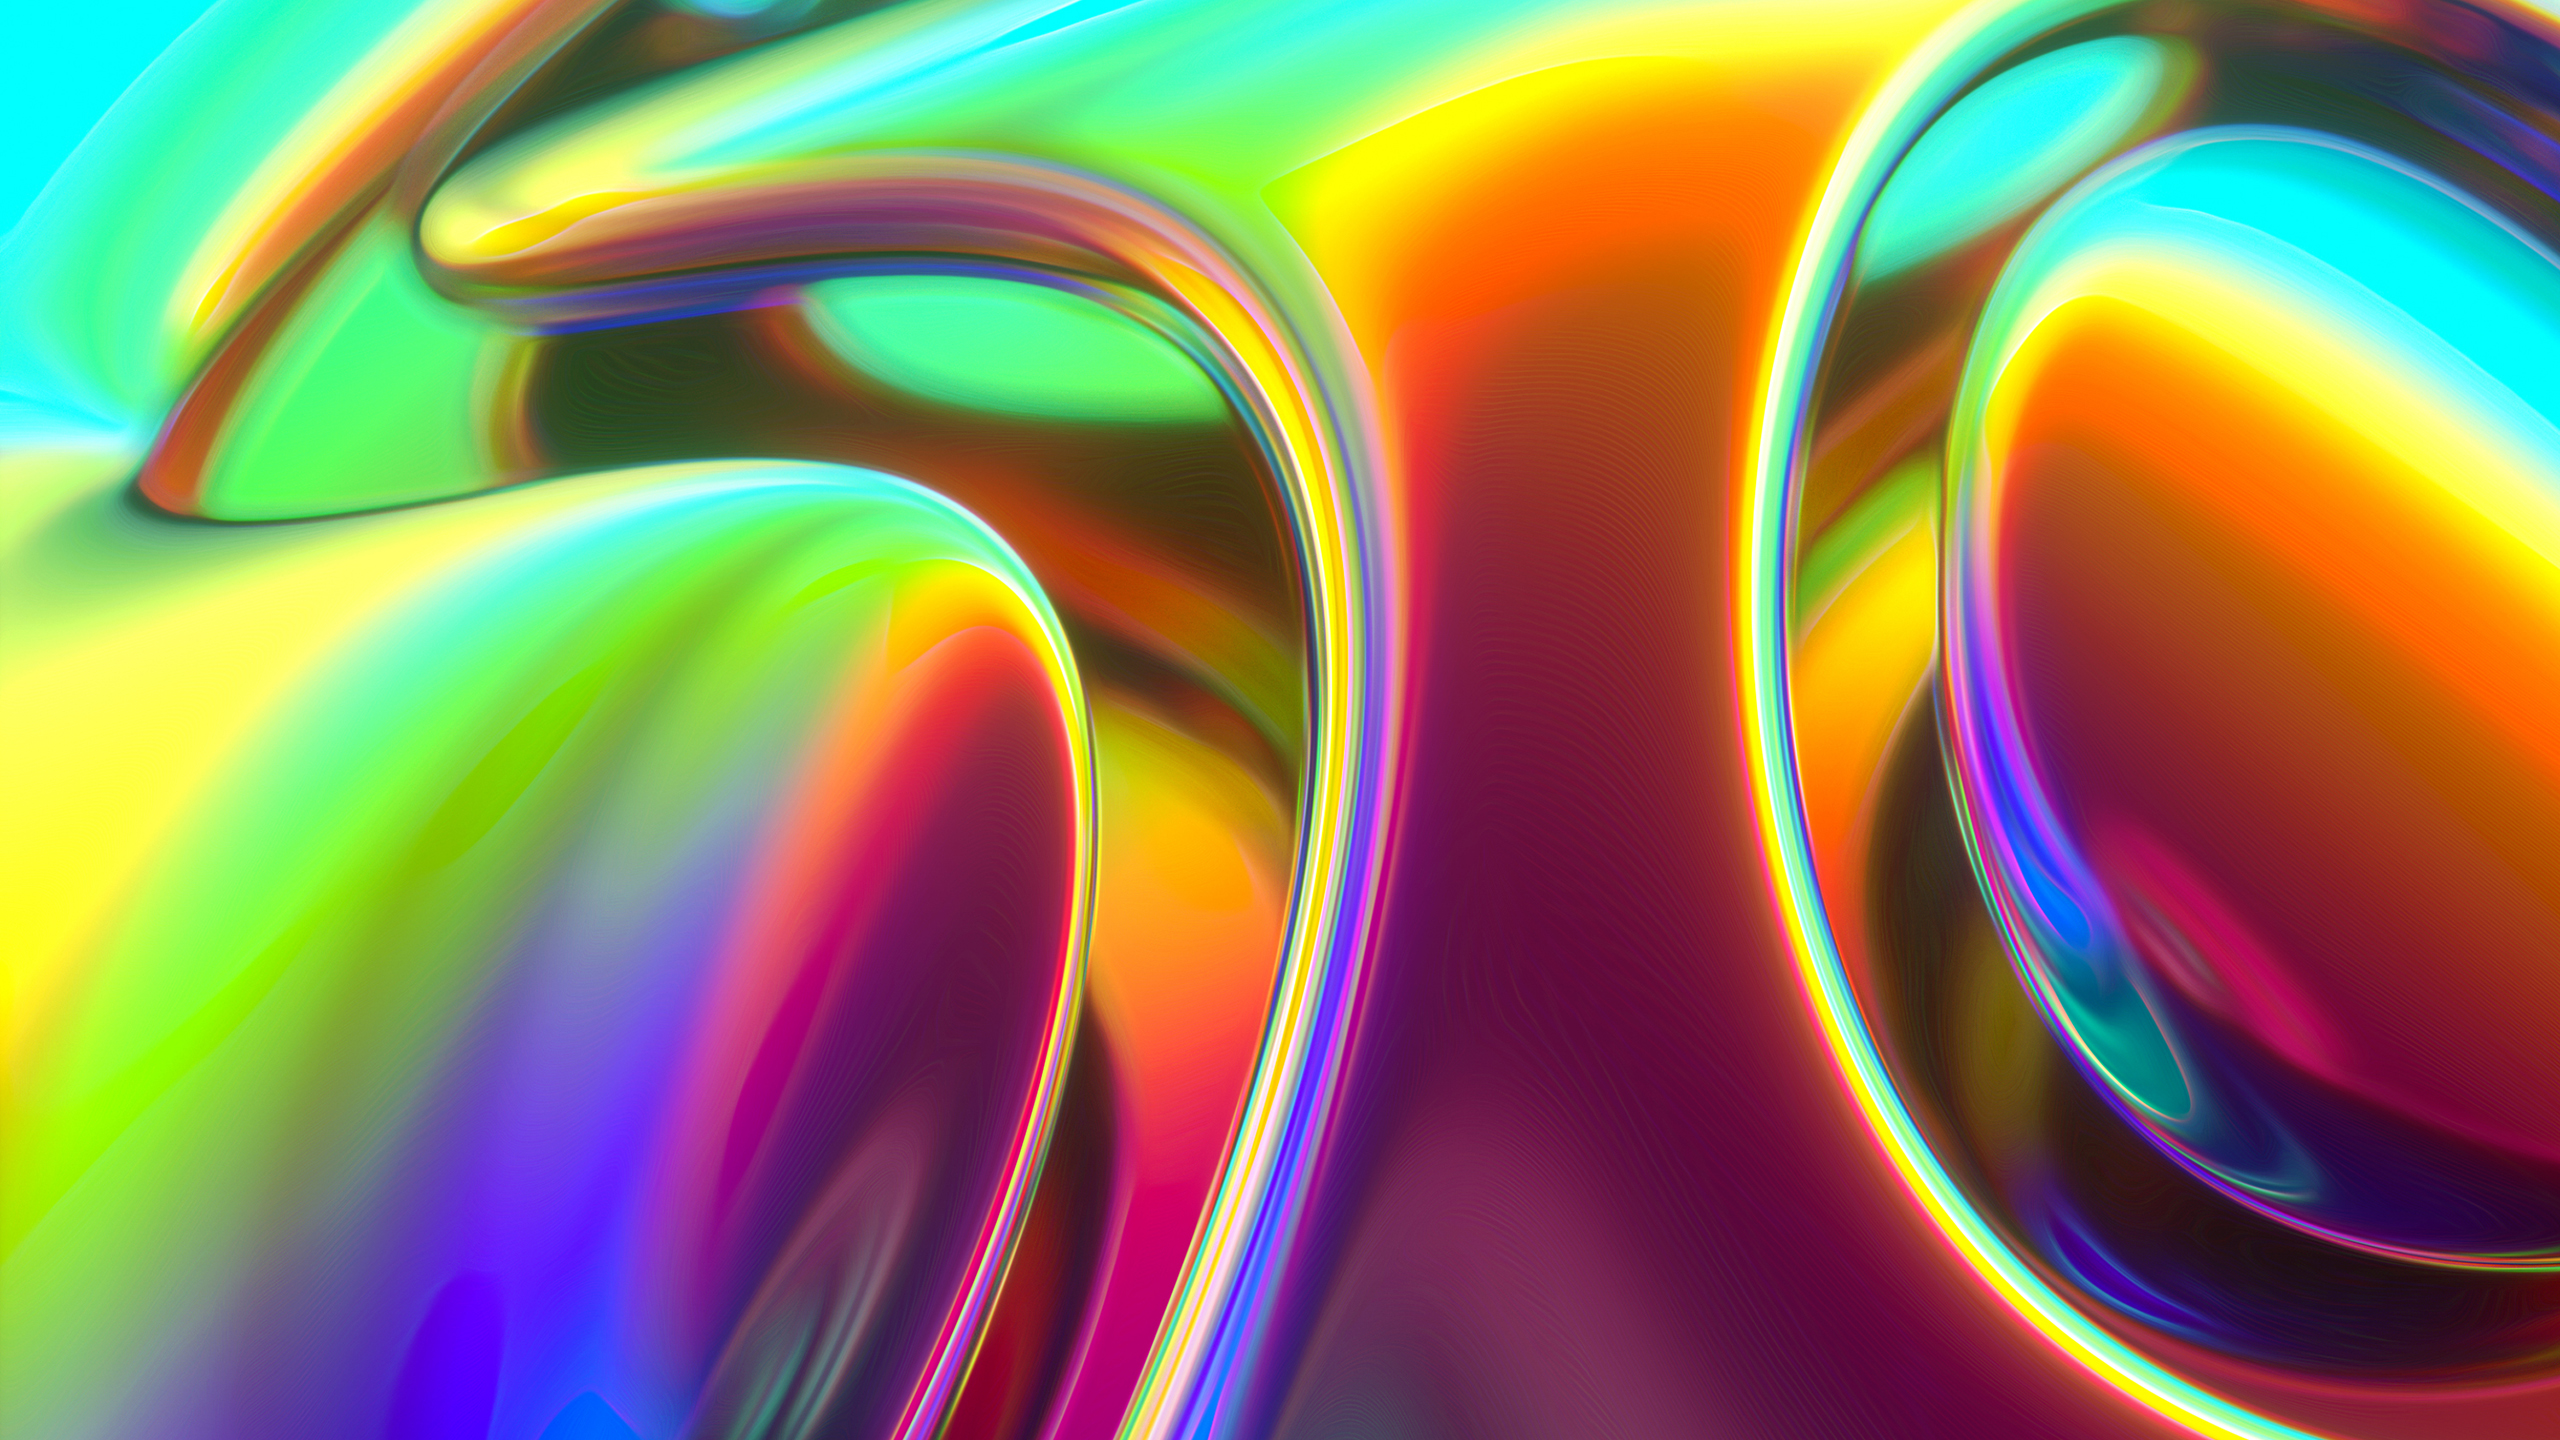 gradient-abstract-new-wallpaper